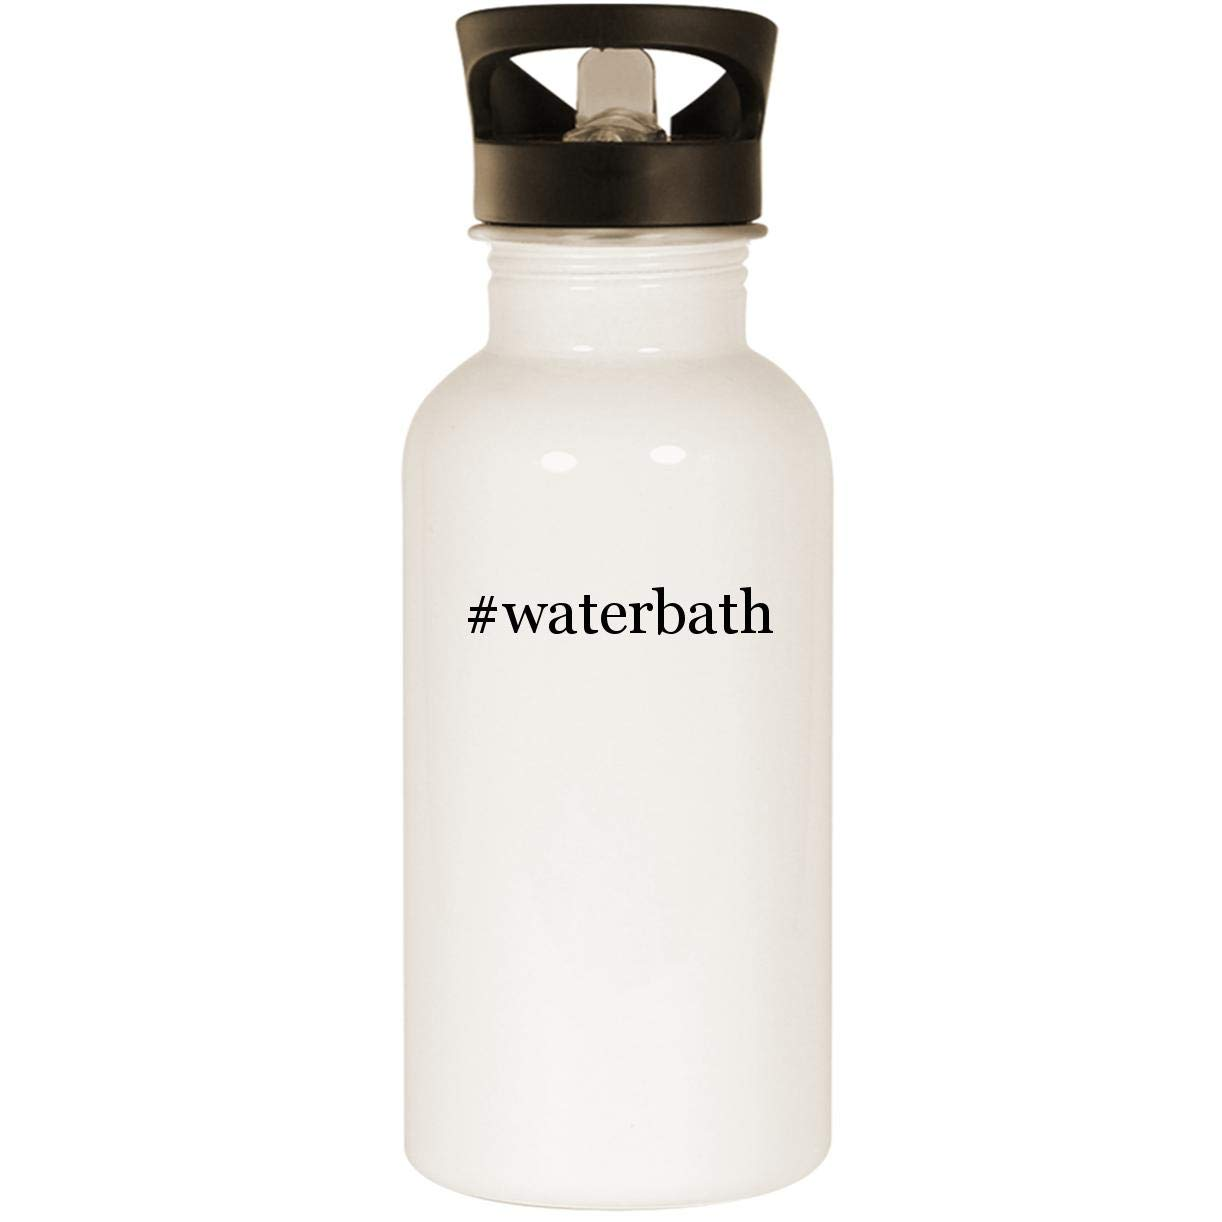 #waterbath - Stainless Steel 20oz Road Ready Water Bottle, White by Molandra Products (Image #1)